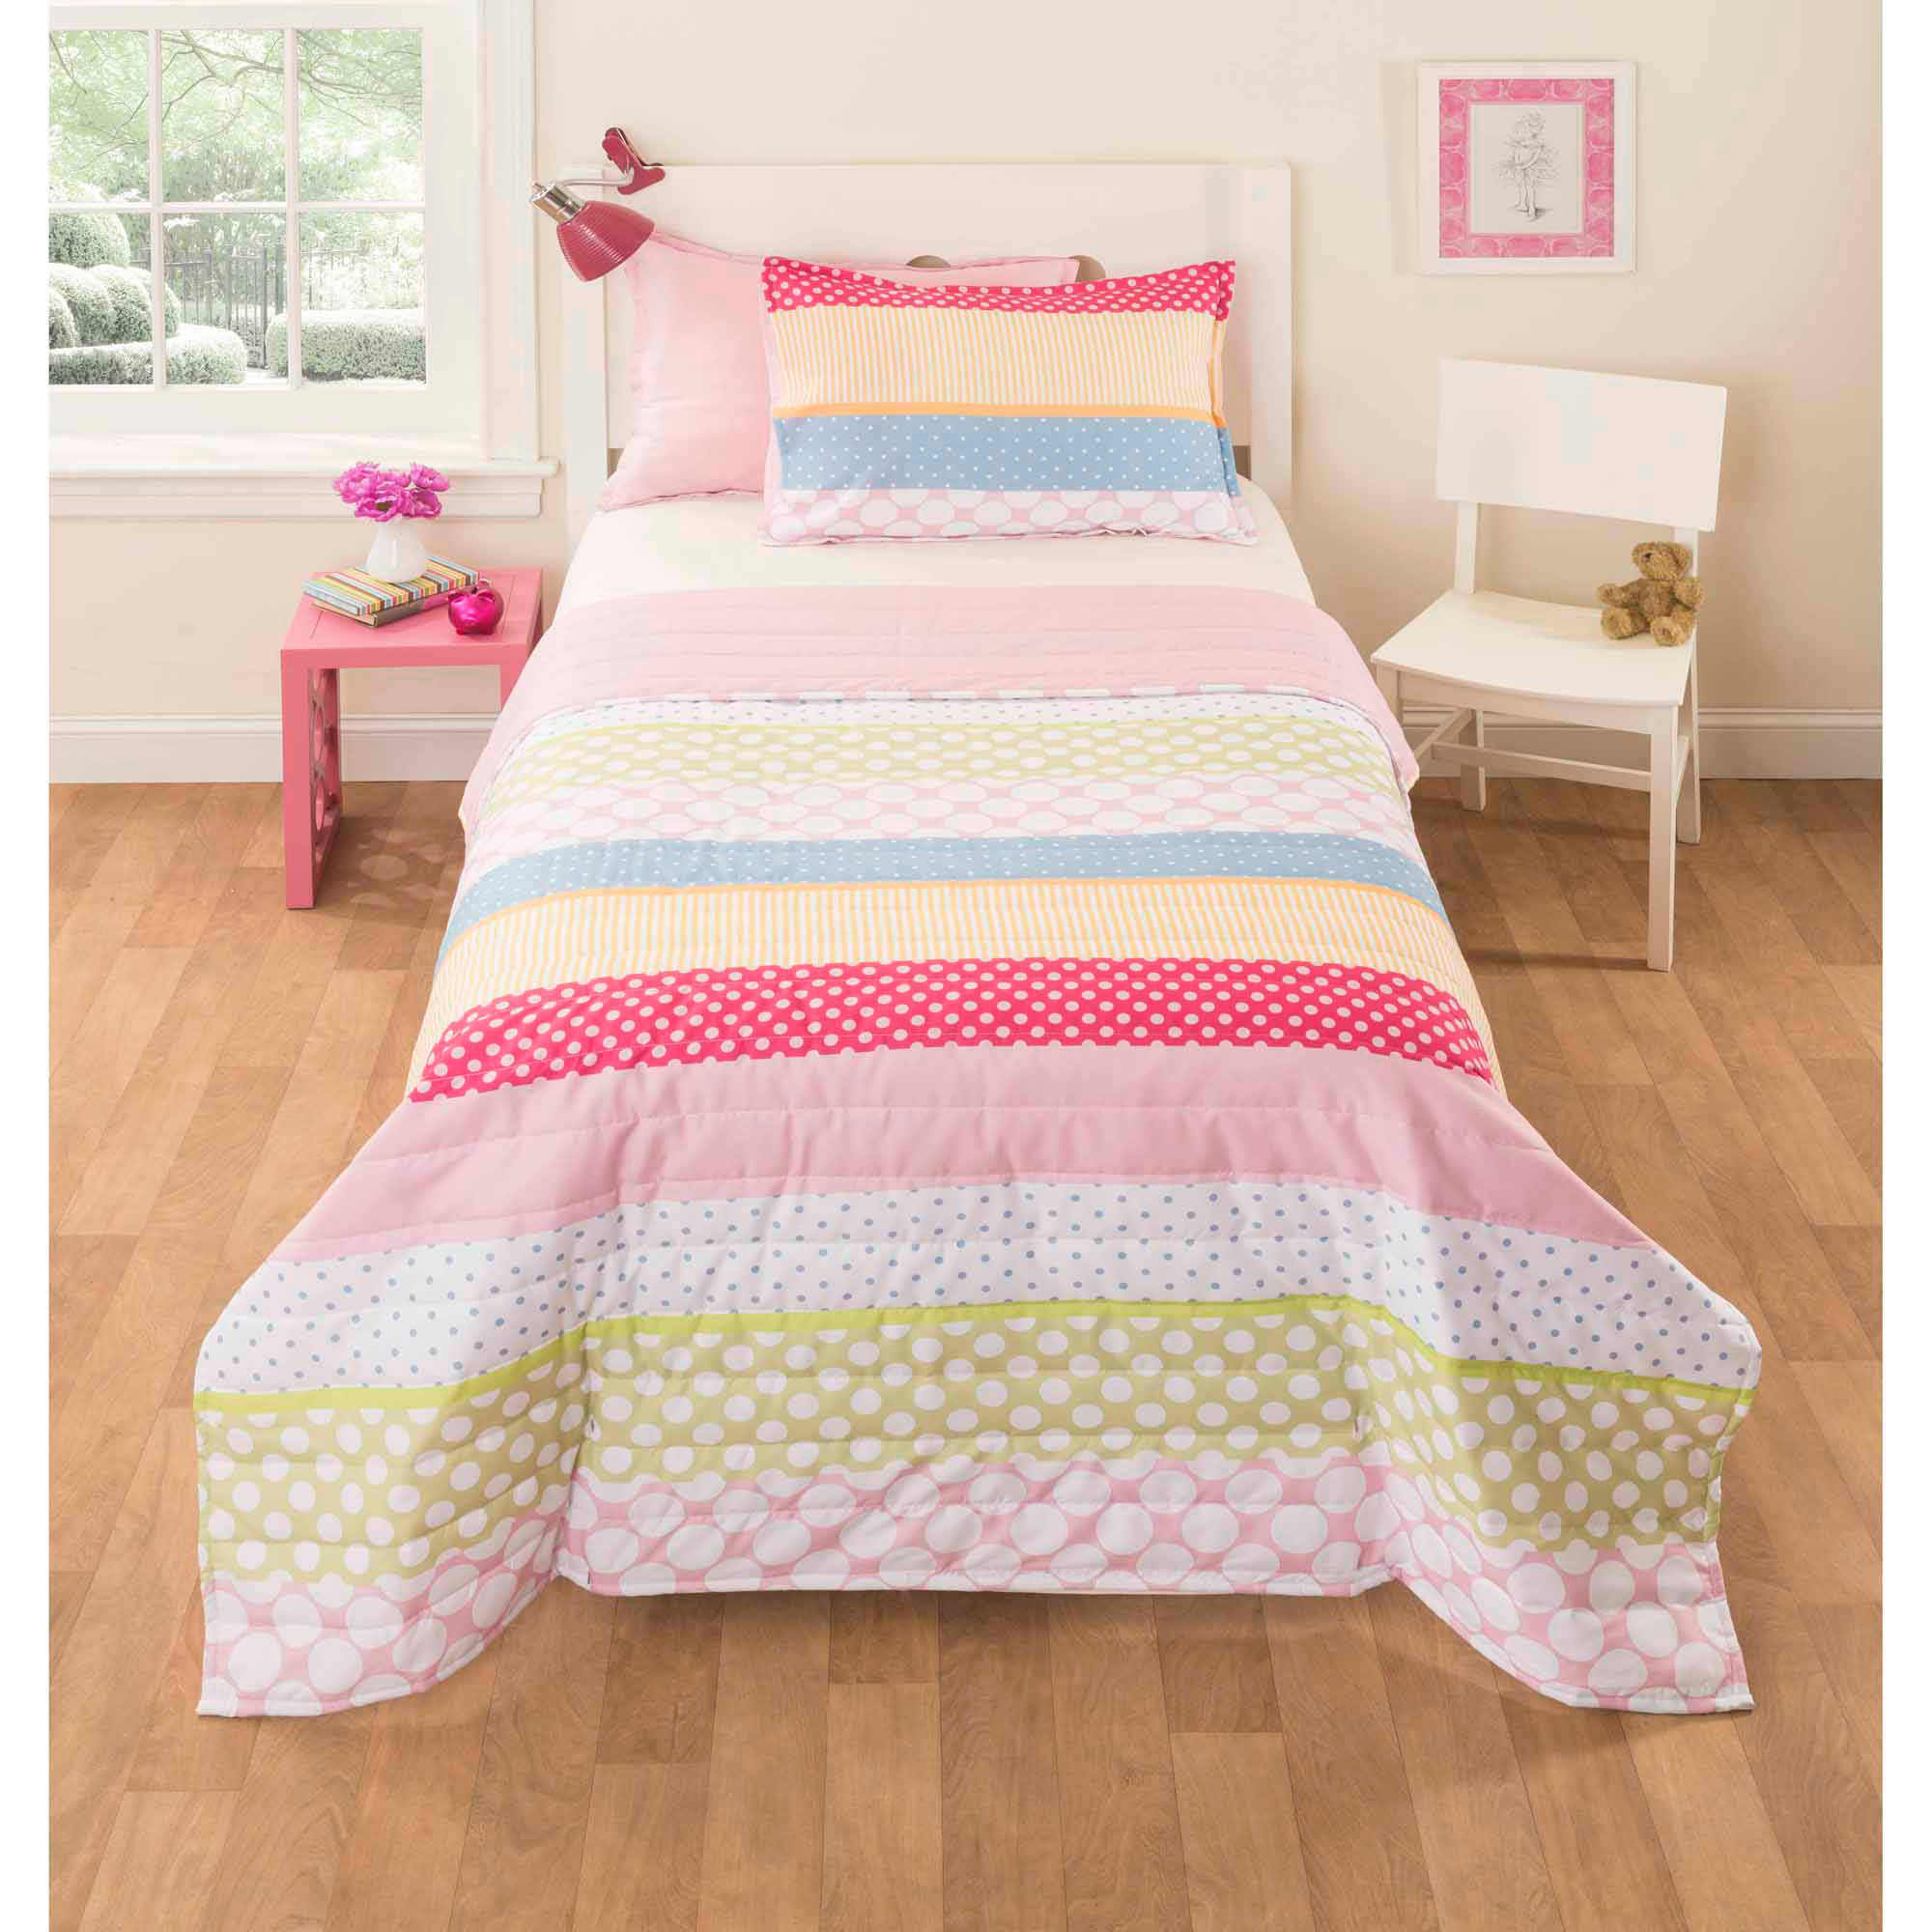 Bed sheet set with quilt - Bed Sheet Set With Quilt 37